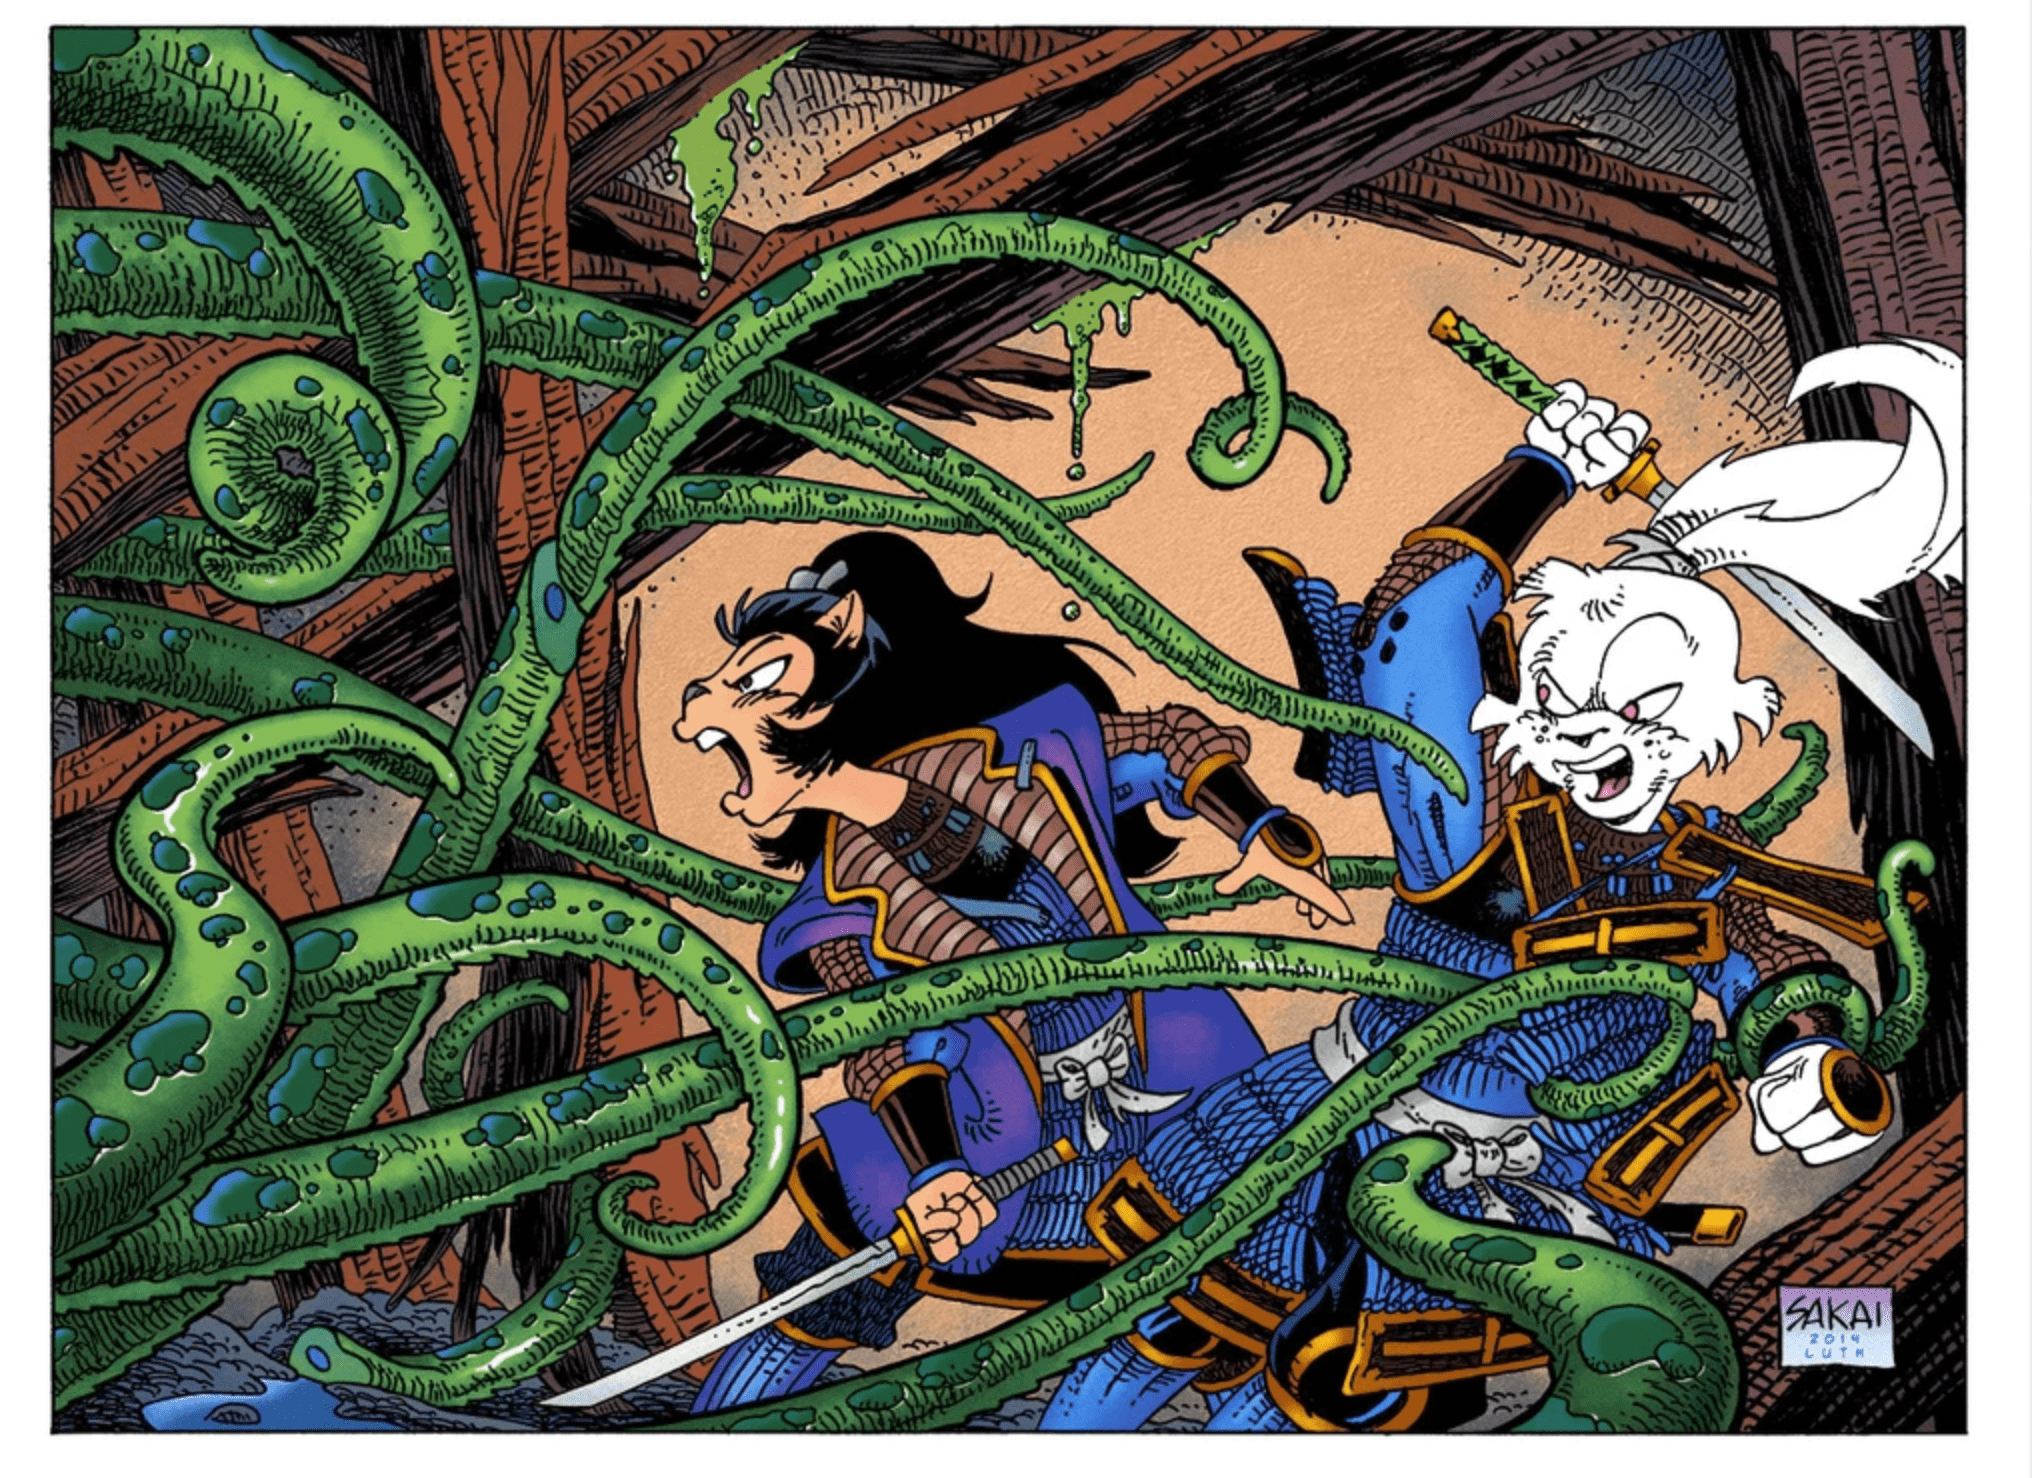 'Usagi Yojimbo' CGI series coming to Netflix with James Wan and Stan Sakai producing